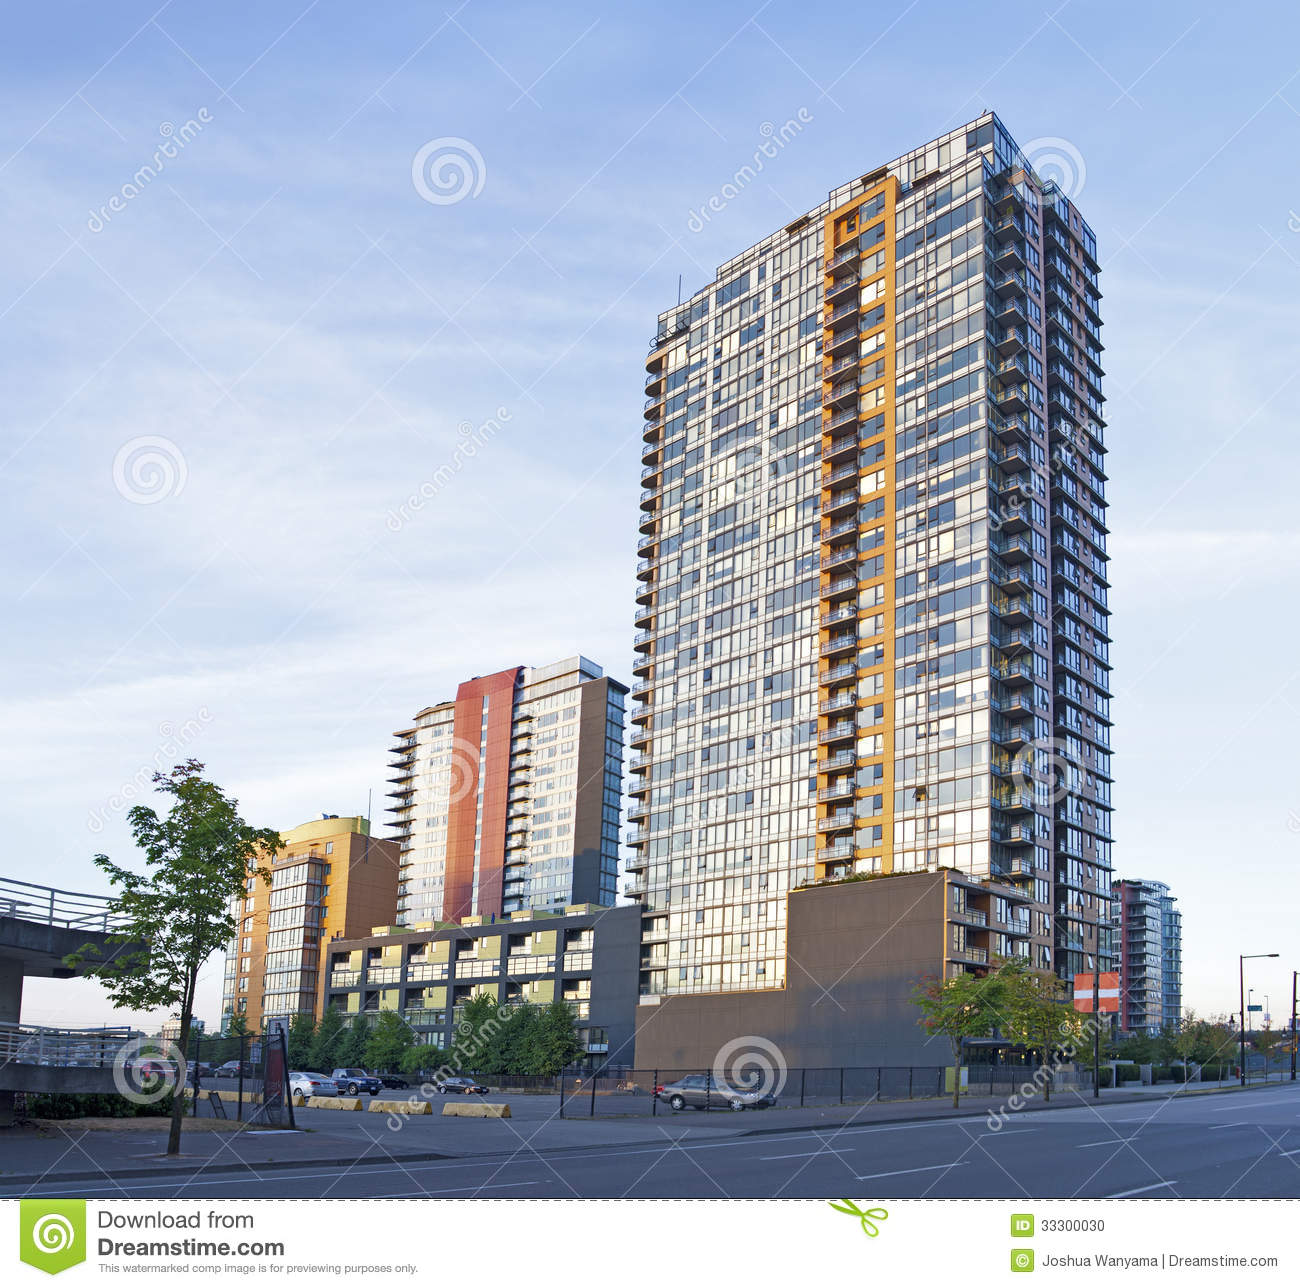 New Condos And Apartments Rise Up Around: Apartment Buildings Stock Photo. Image Of Colorful